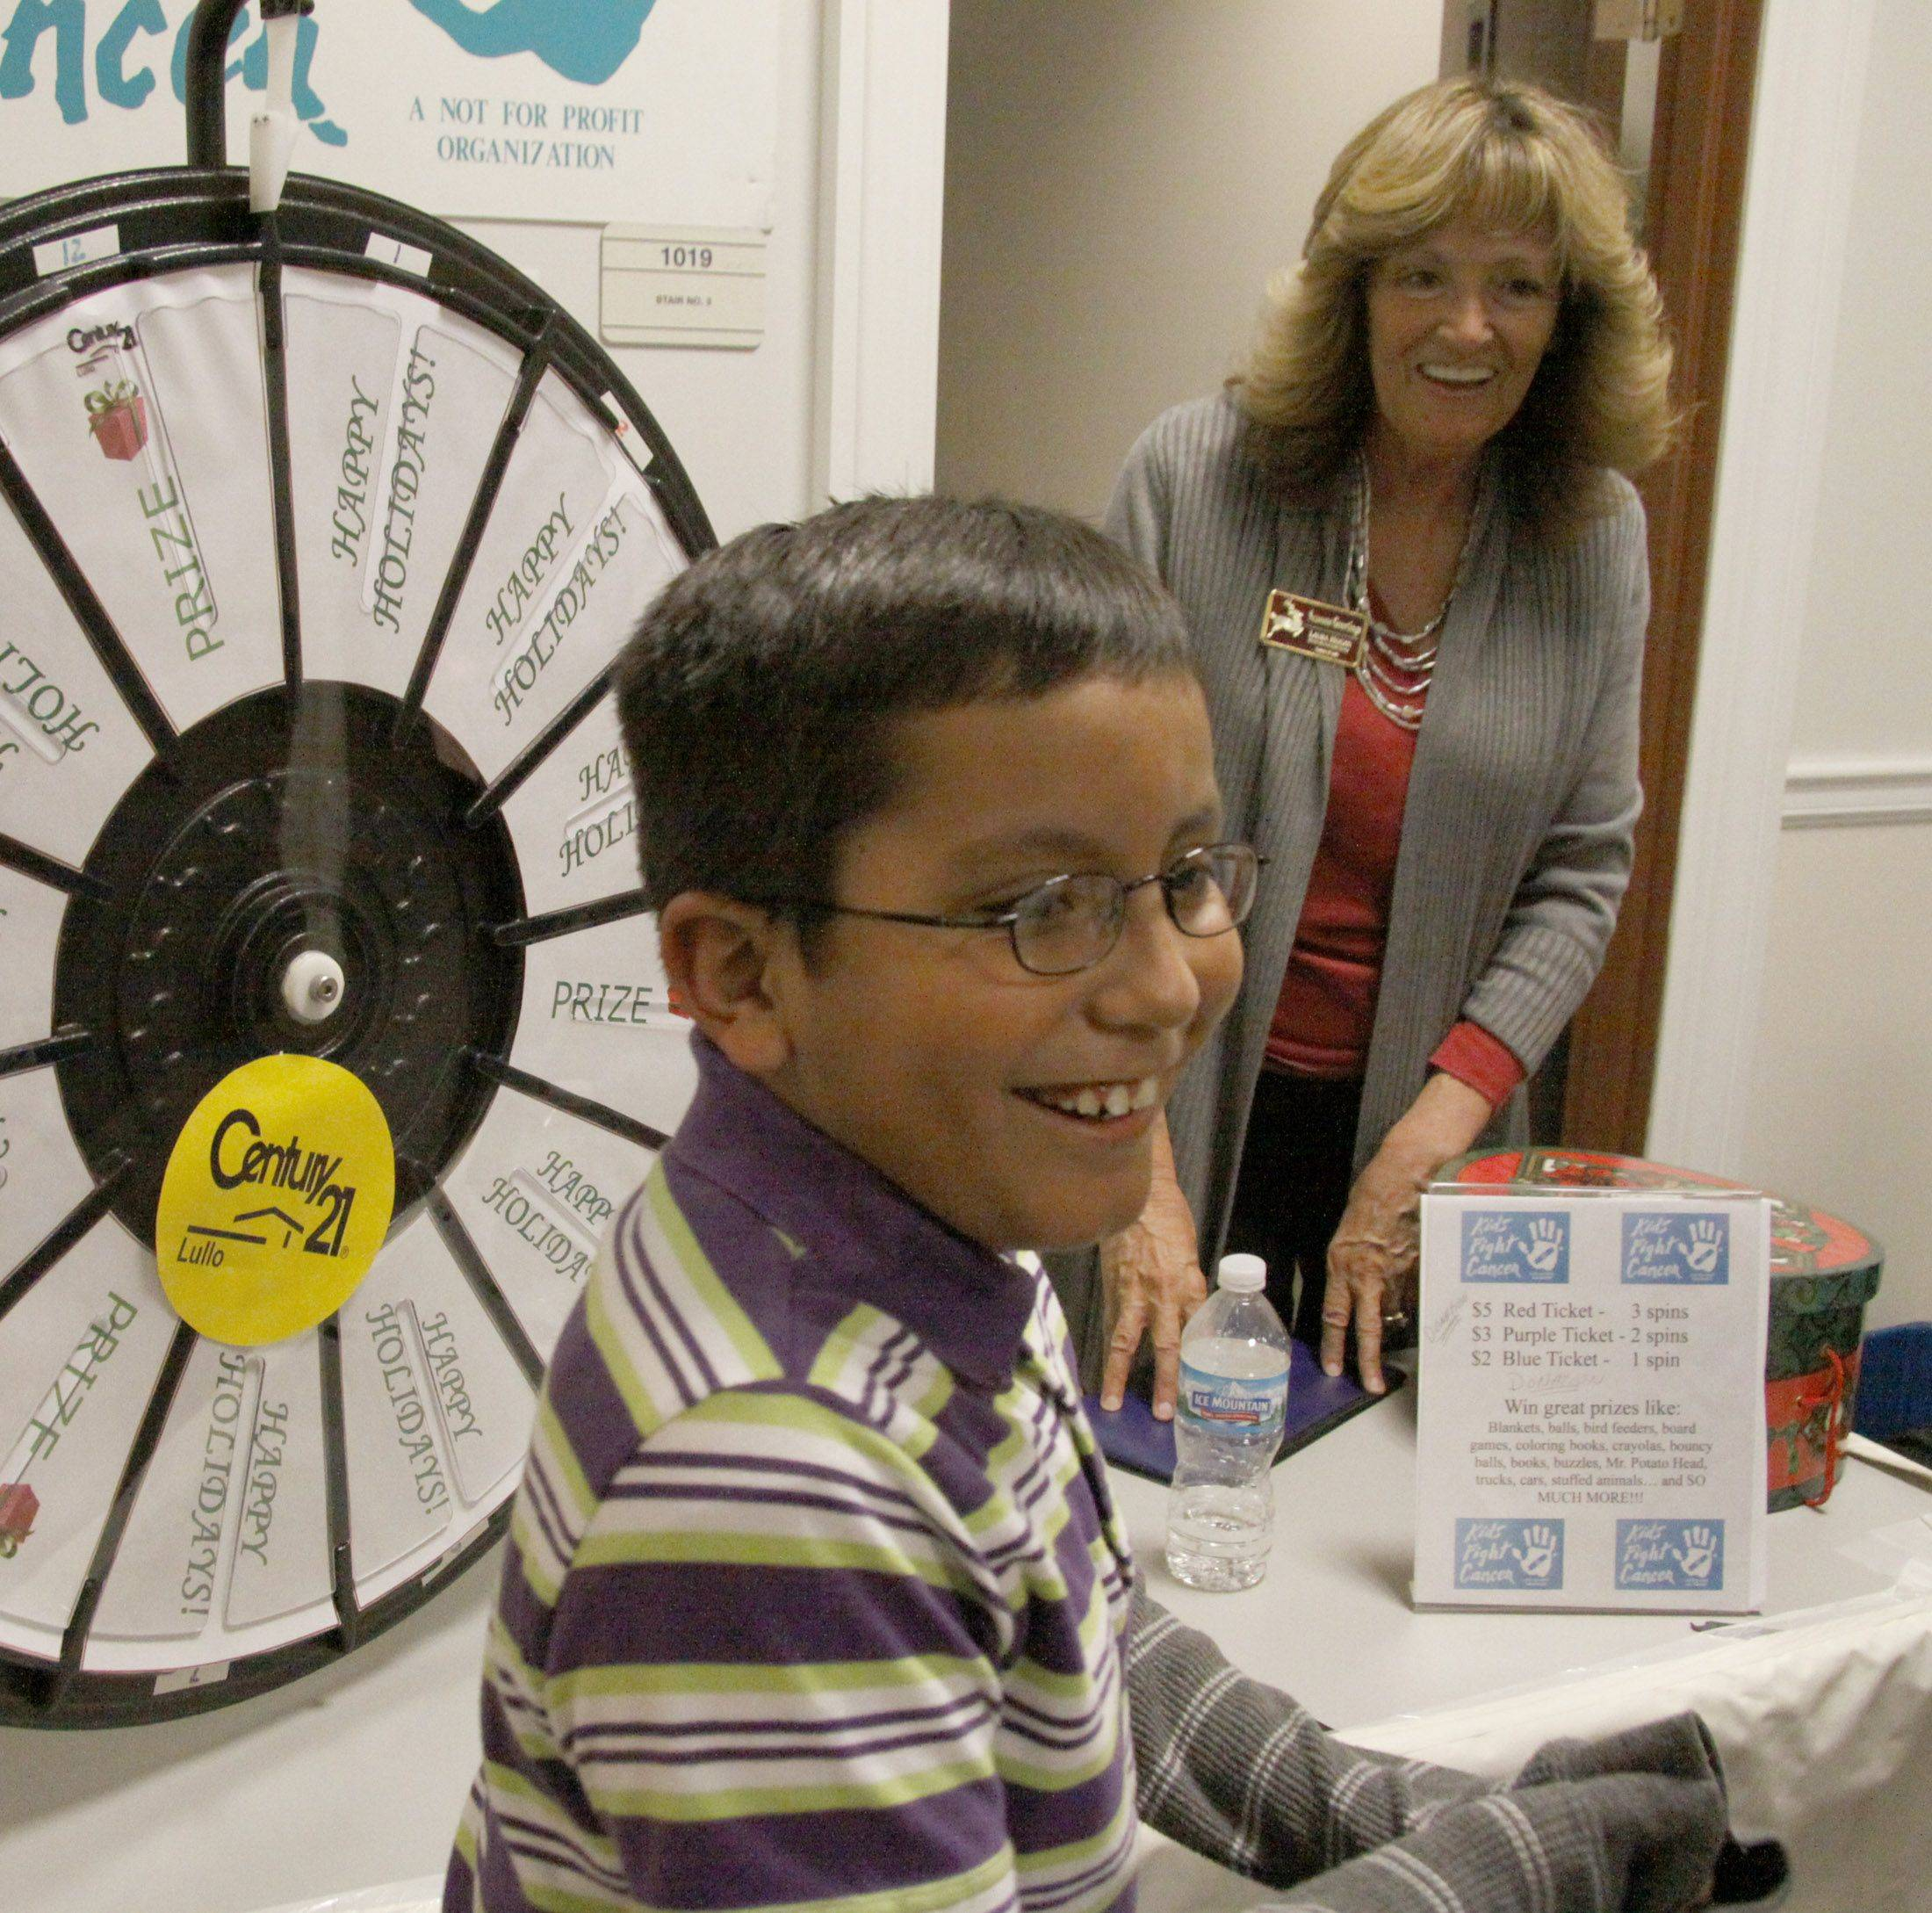 Laura Hogan looks on as Kevin Esparca, 9, of Addison reveals his excitement after he spun on the prize wheel at Friday's celebration of the season in Addison.